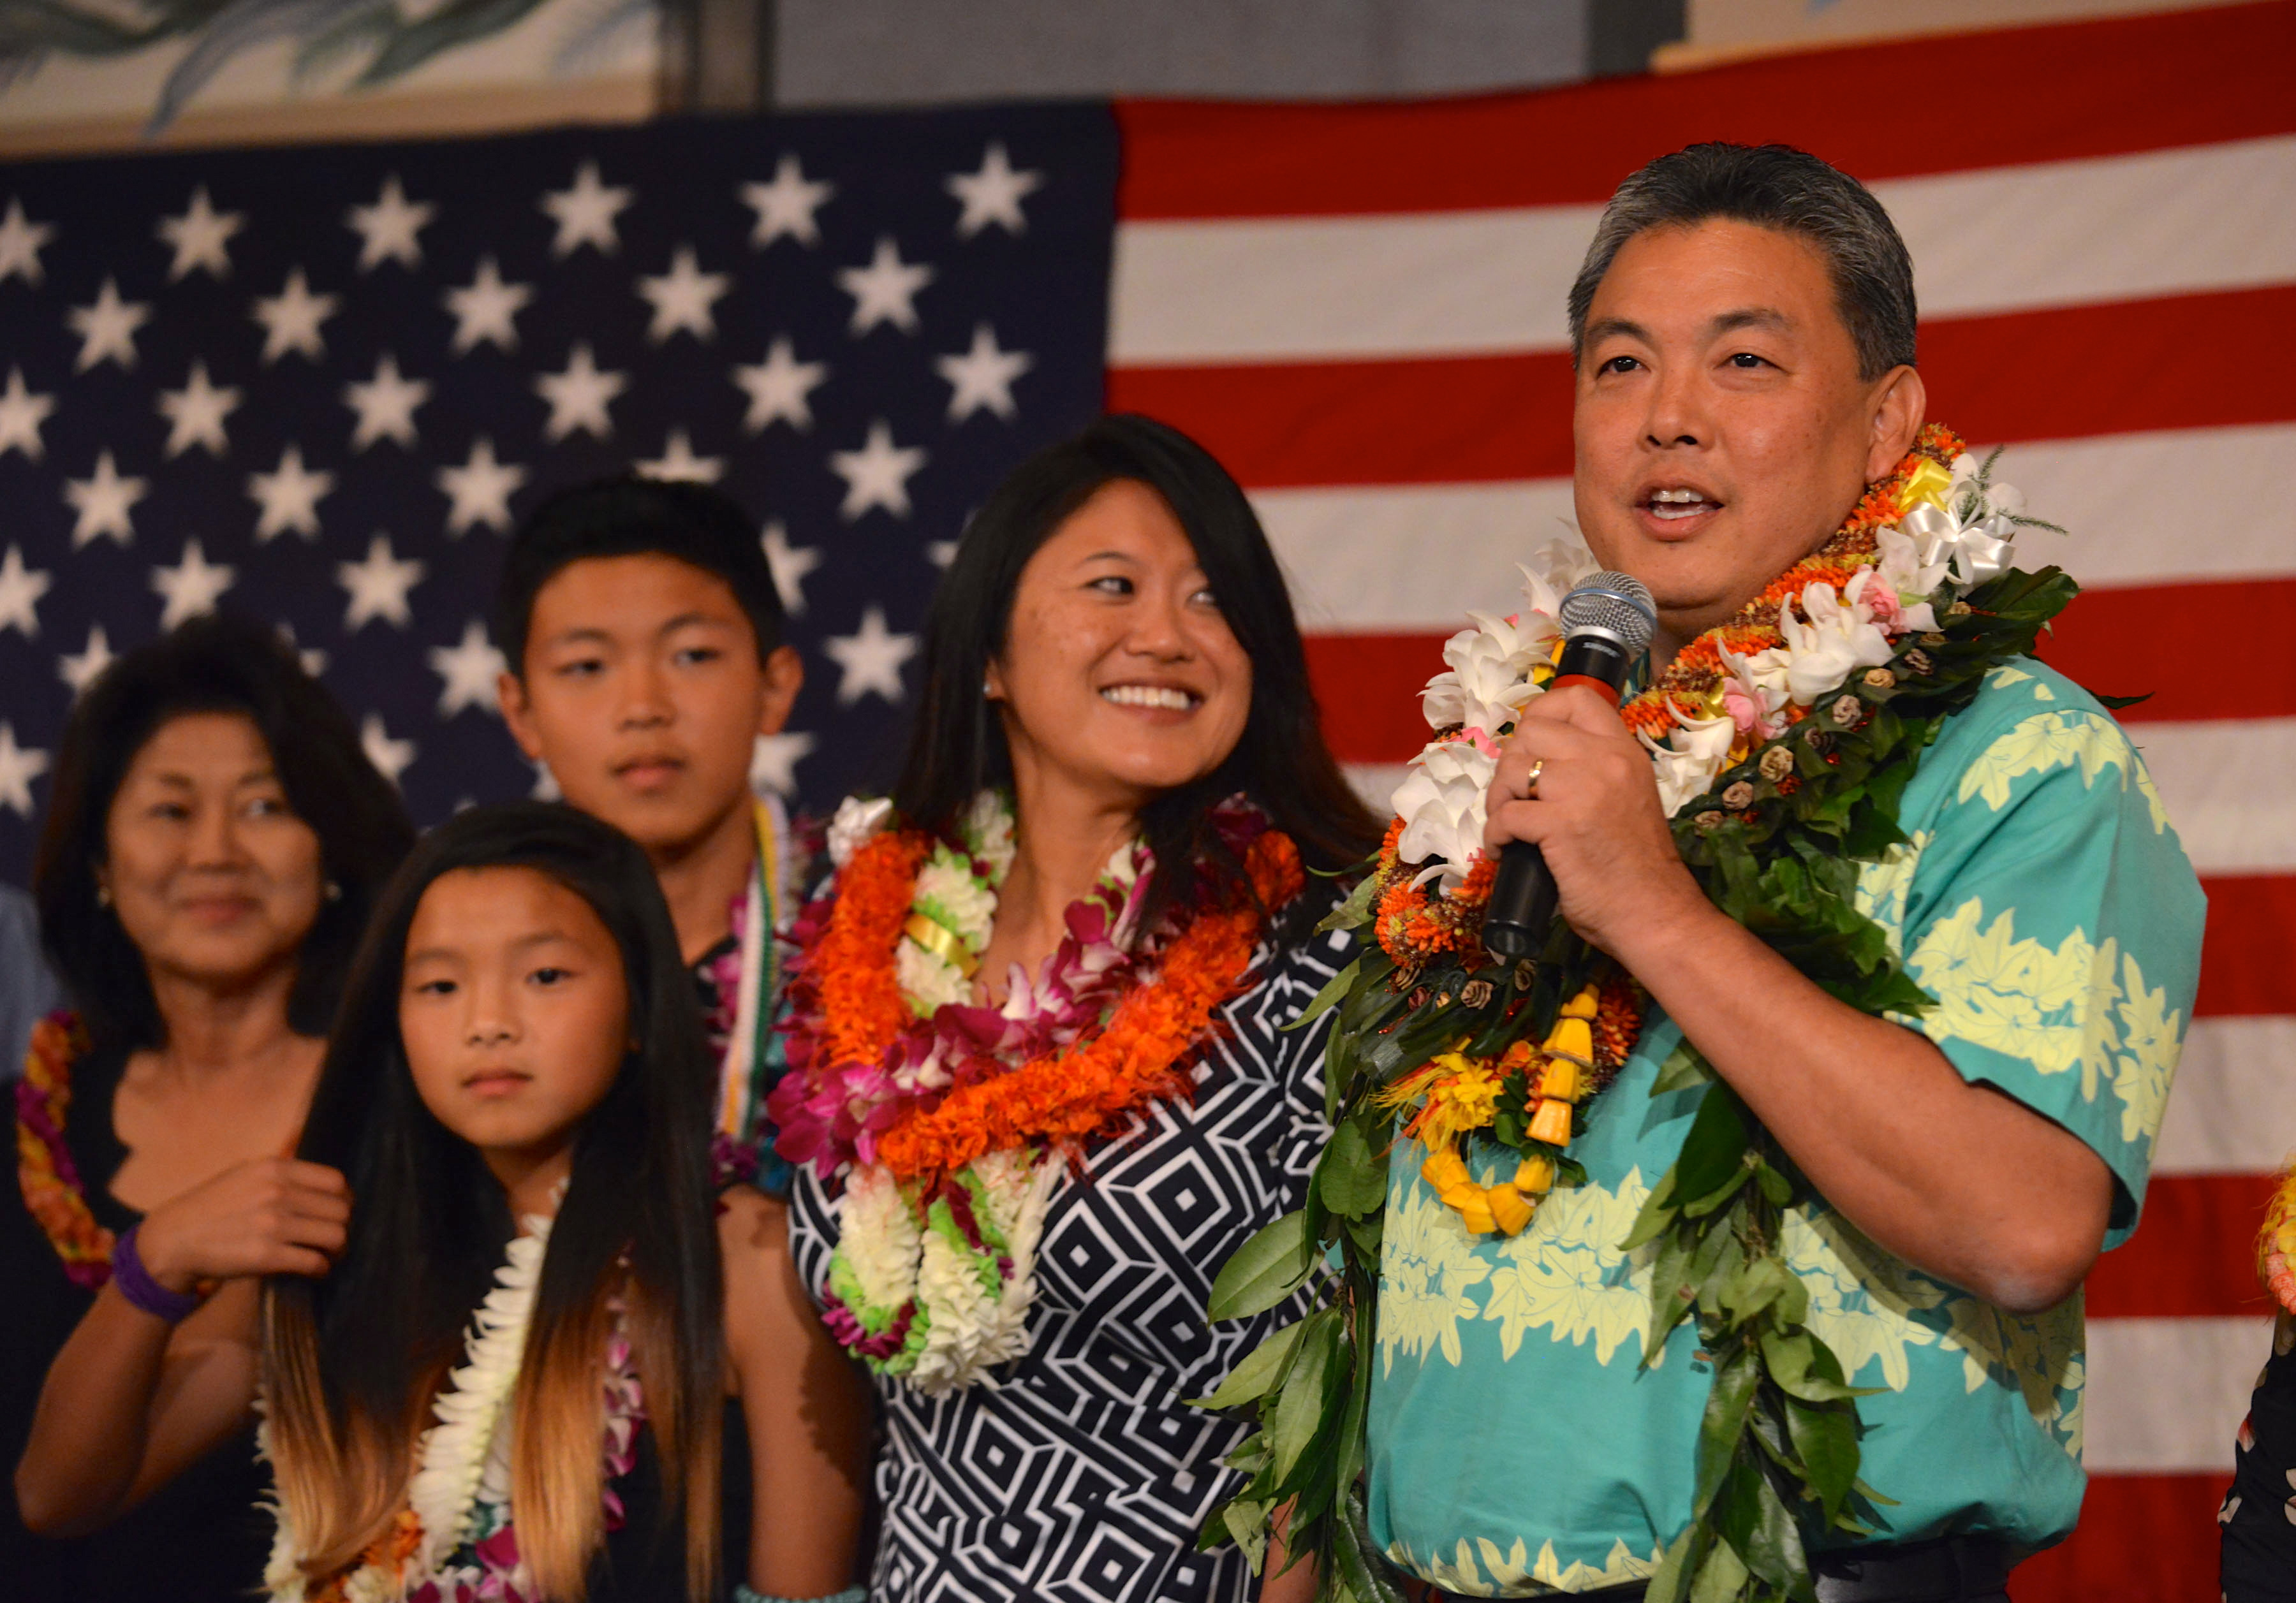 <p><strong>November 2014, Victory Speech:</strong> Takai speaks to his supporters after being declared the winner. He's joined by his wife, Sami, son Matthew and daughter Kaila.</p>